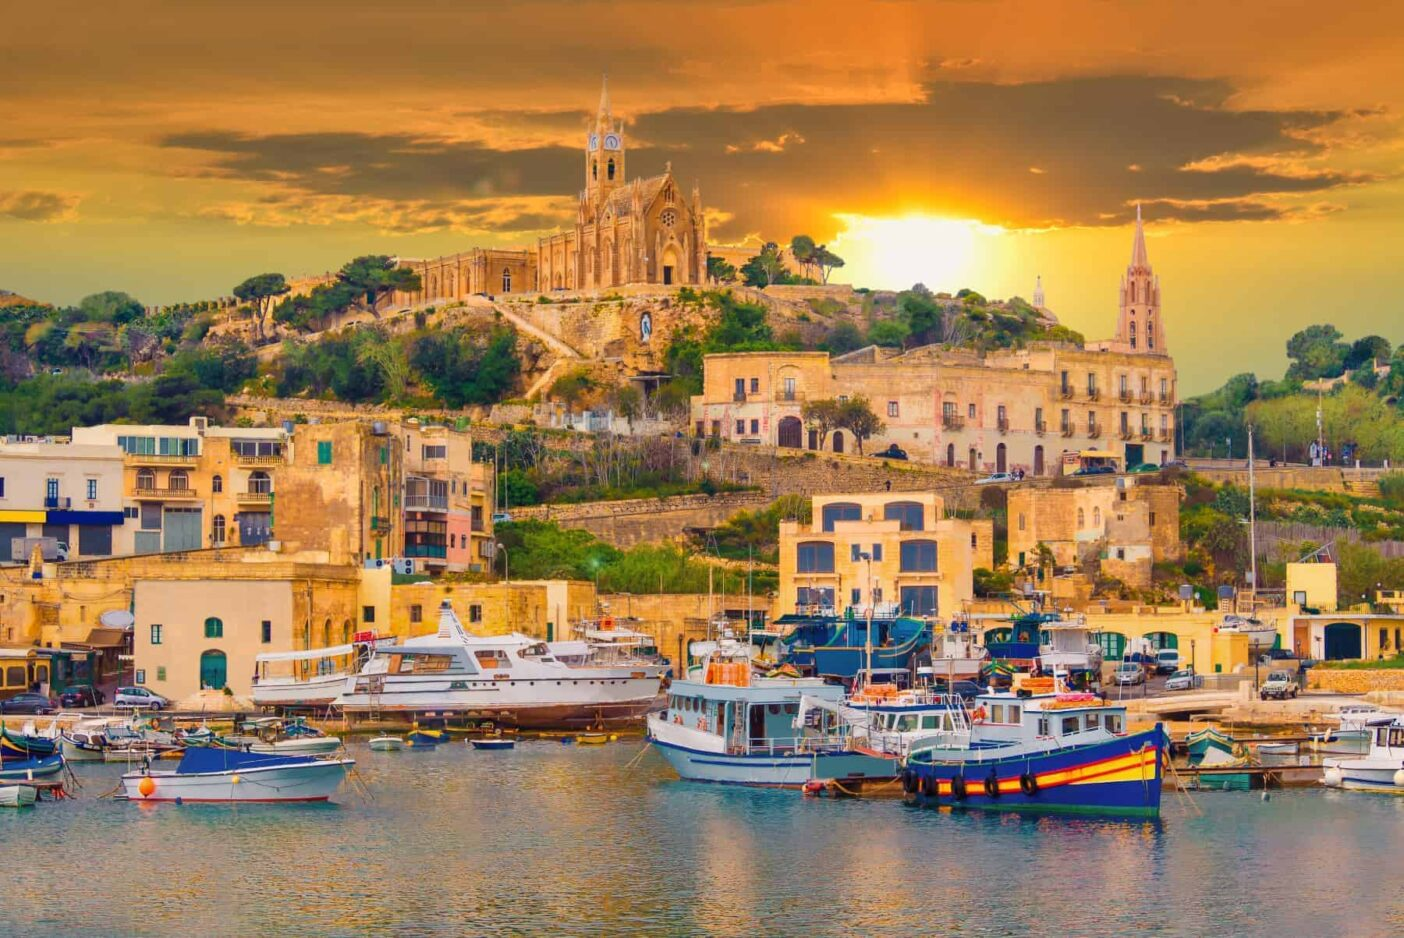 Gozo island, medieval architecture of castle and boats on the harbor of Malta